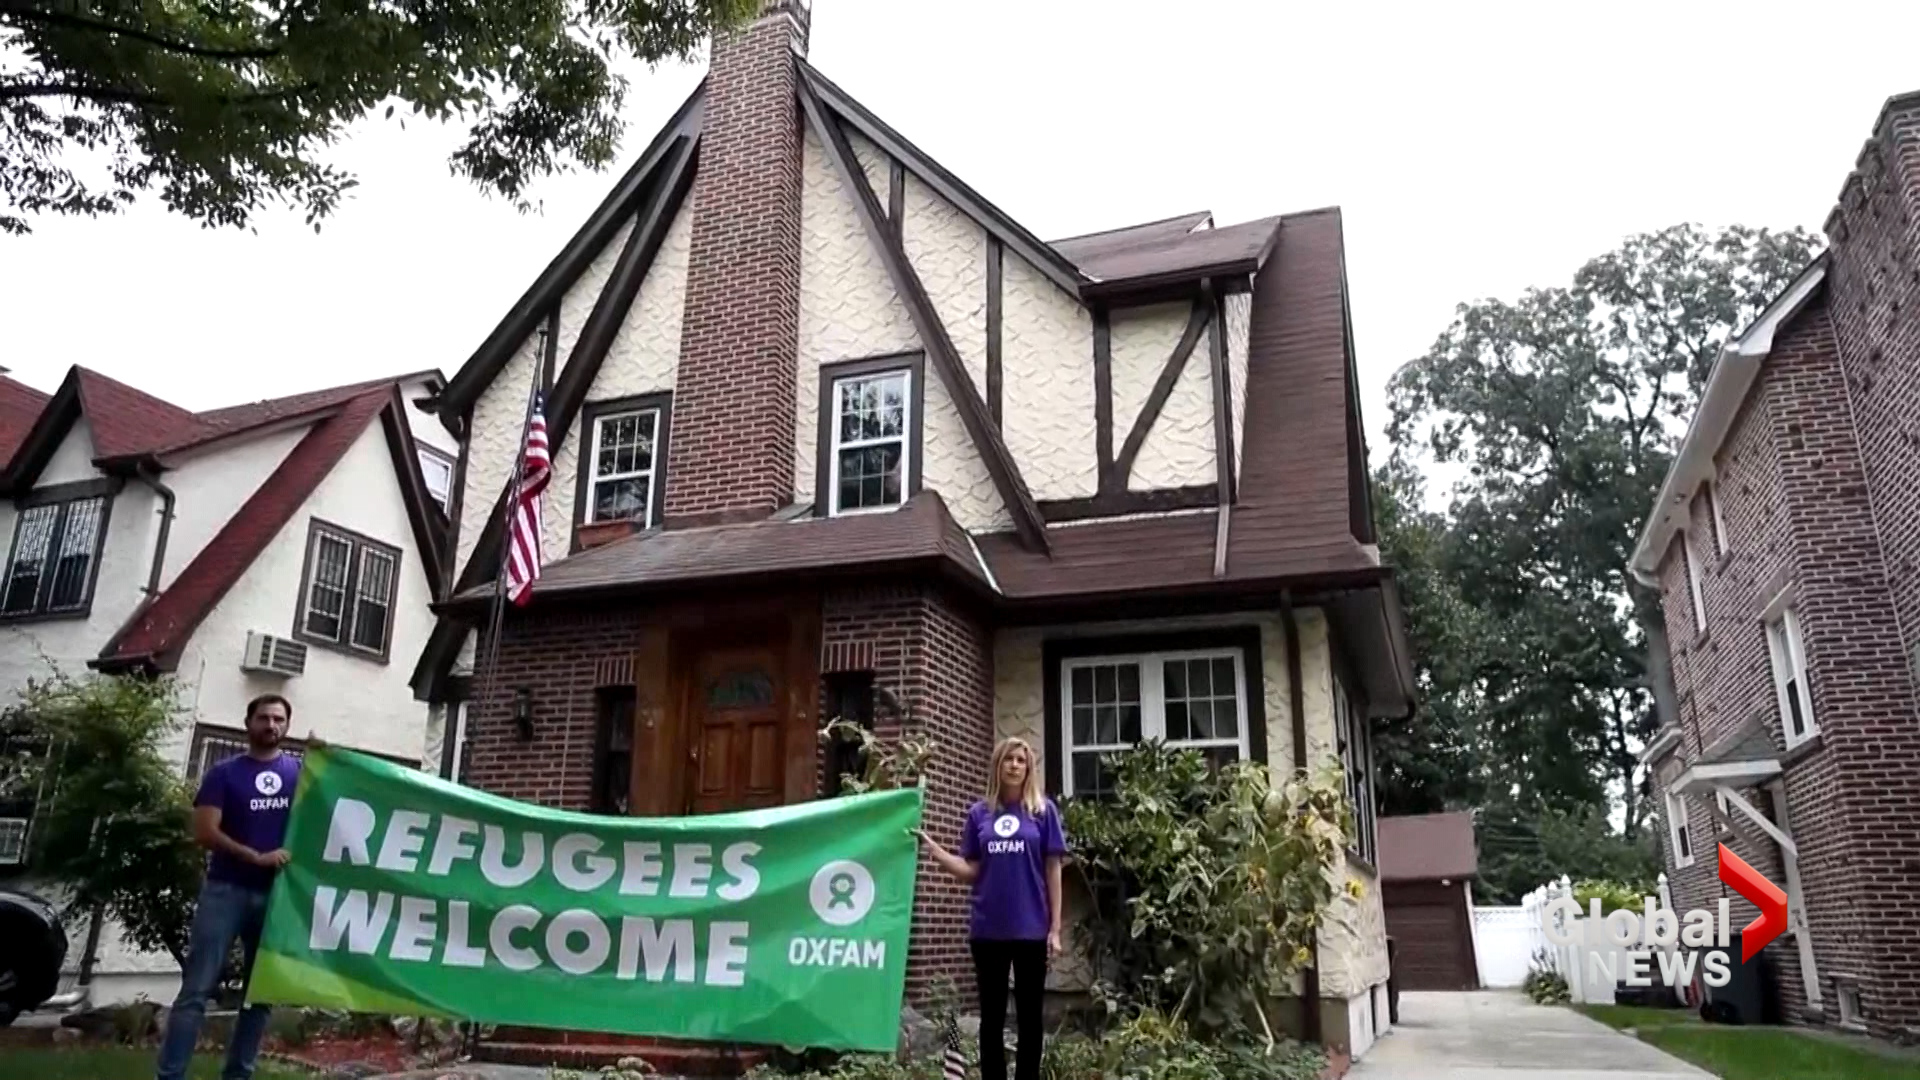 Refugees Invited By Charity Make Themselves At Home In Trump's Childhood Abode